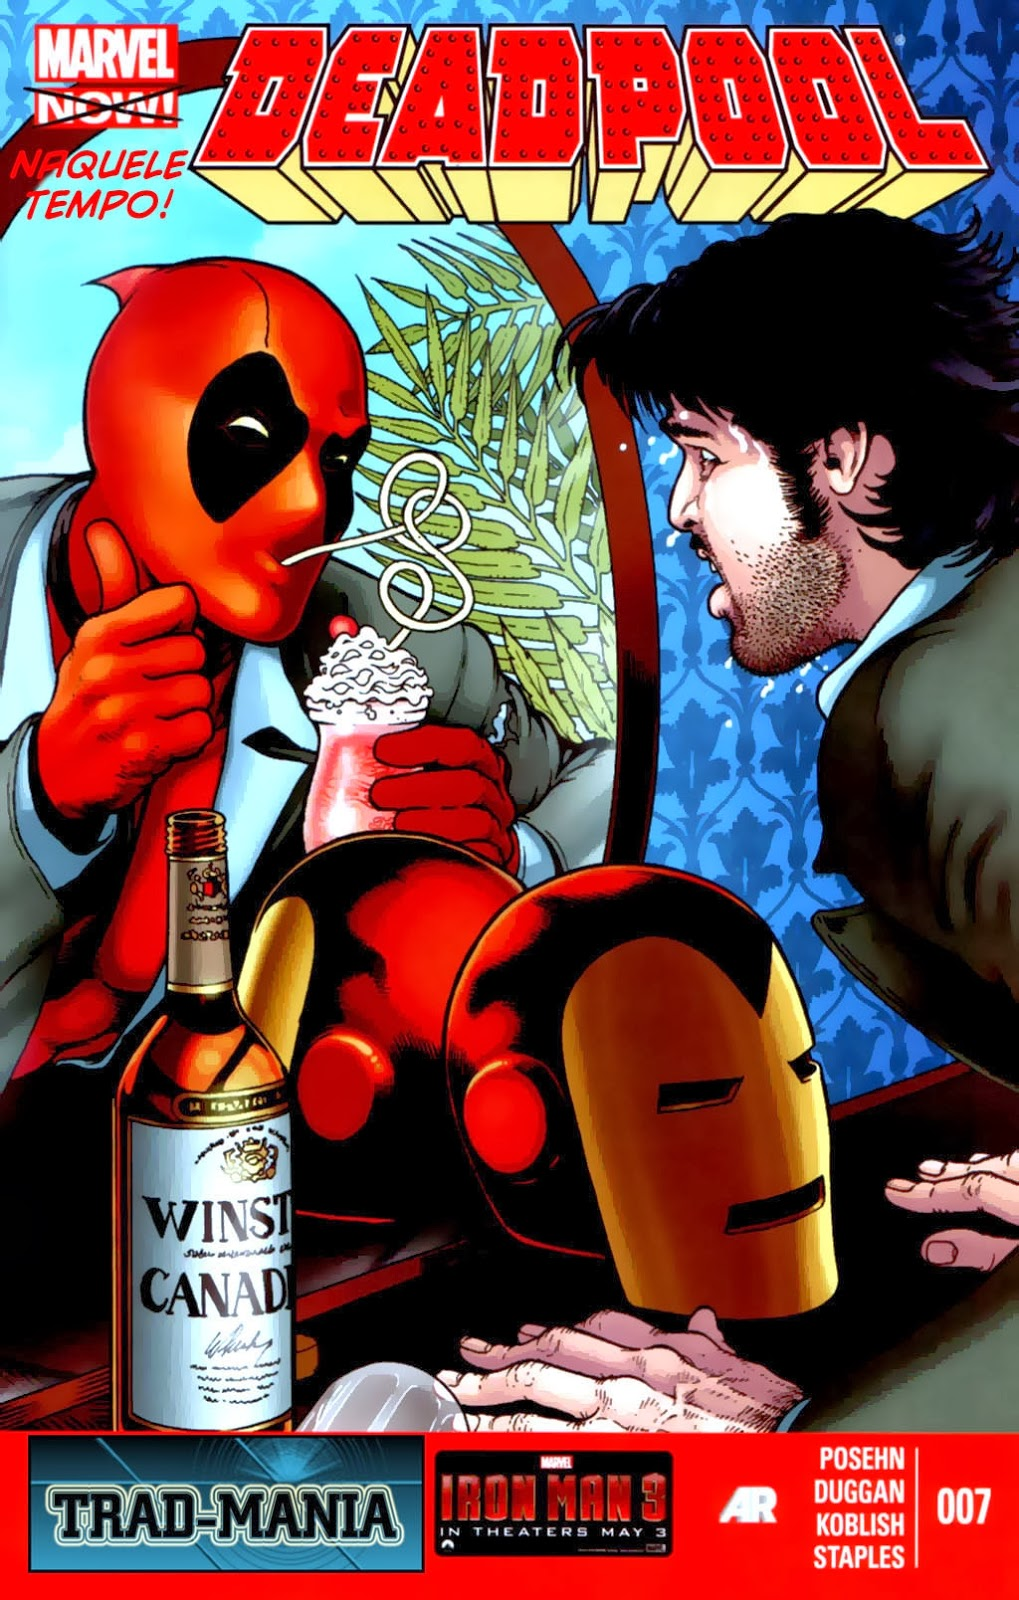 Nova Marvel! Deadpool v5 #7